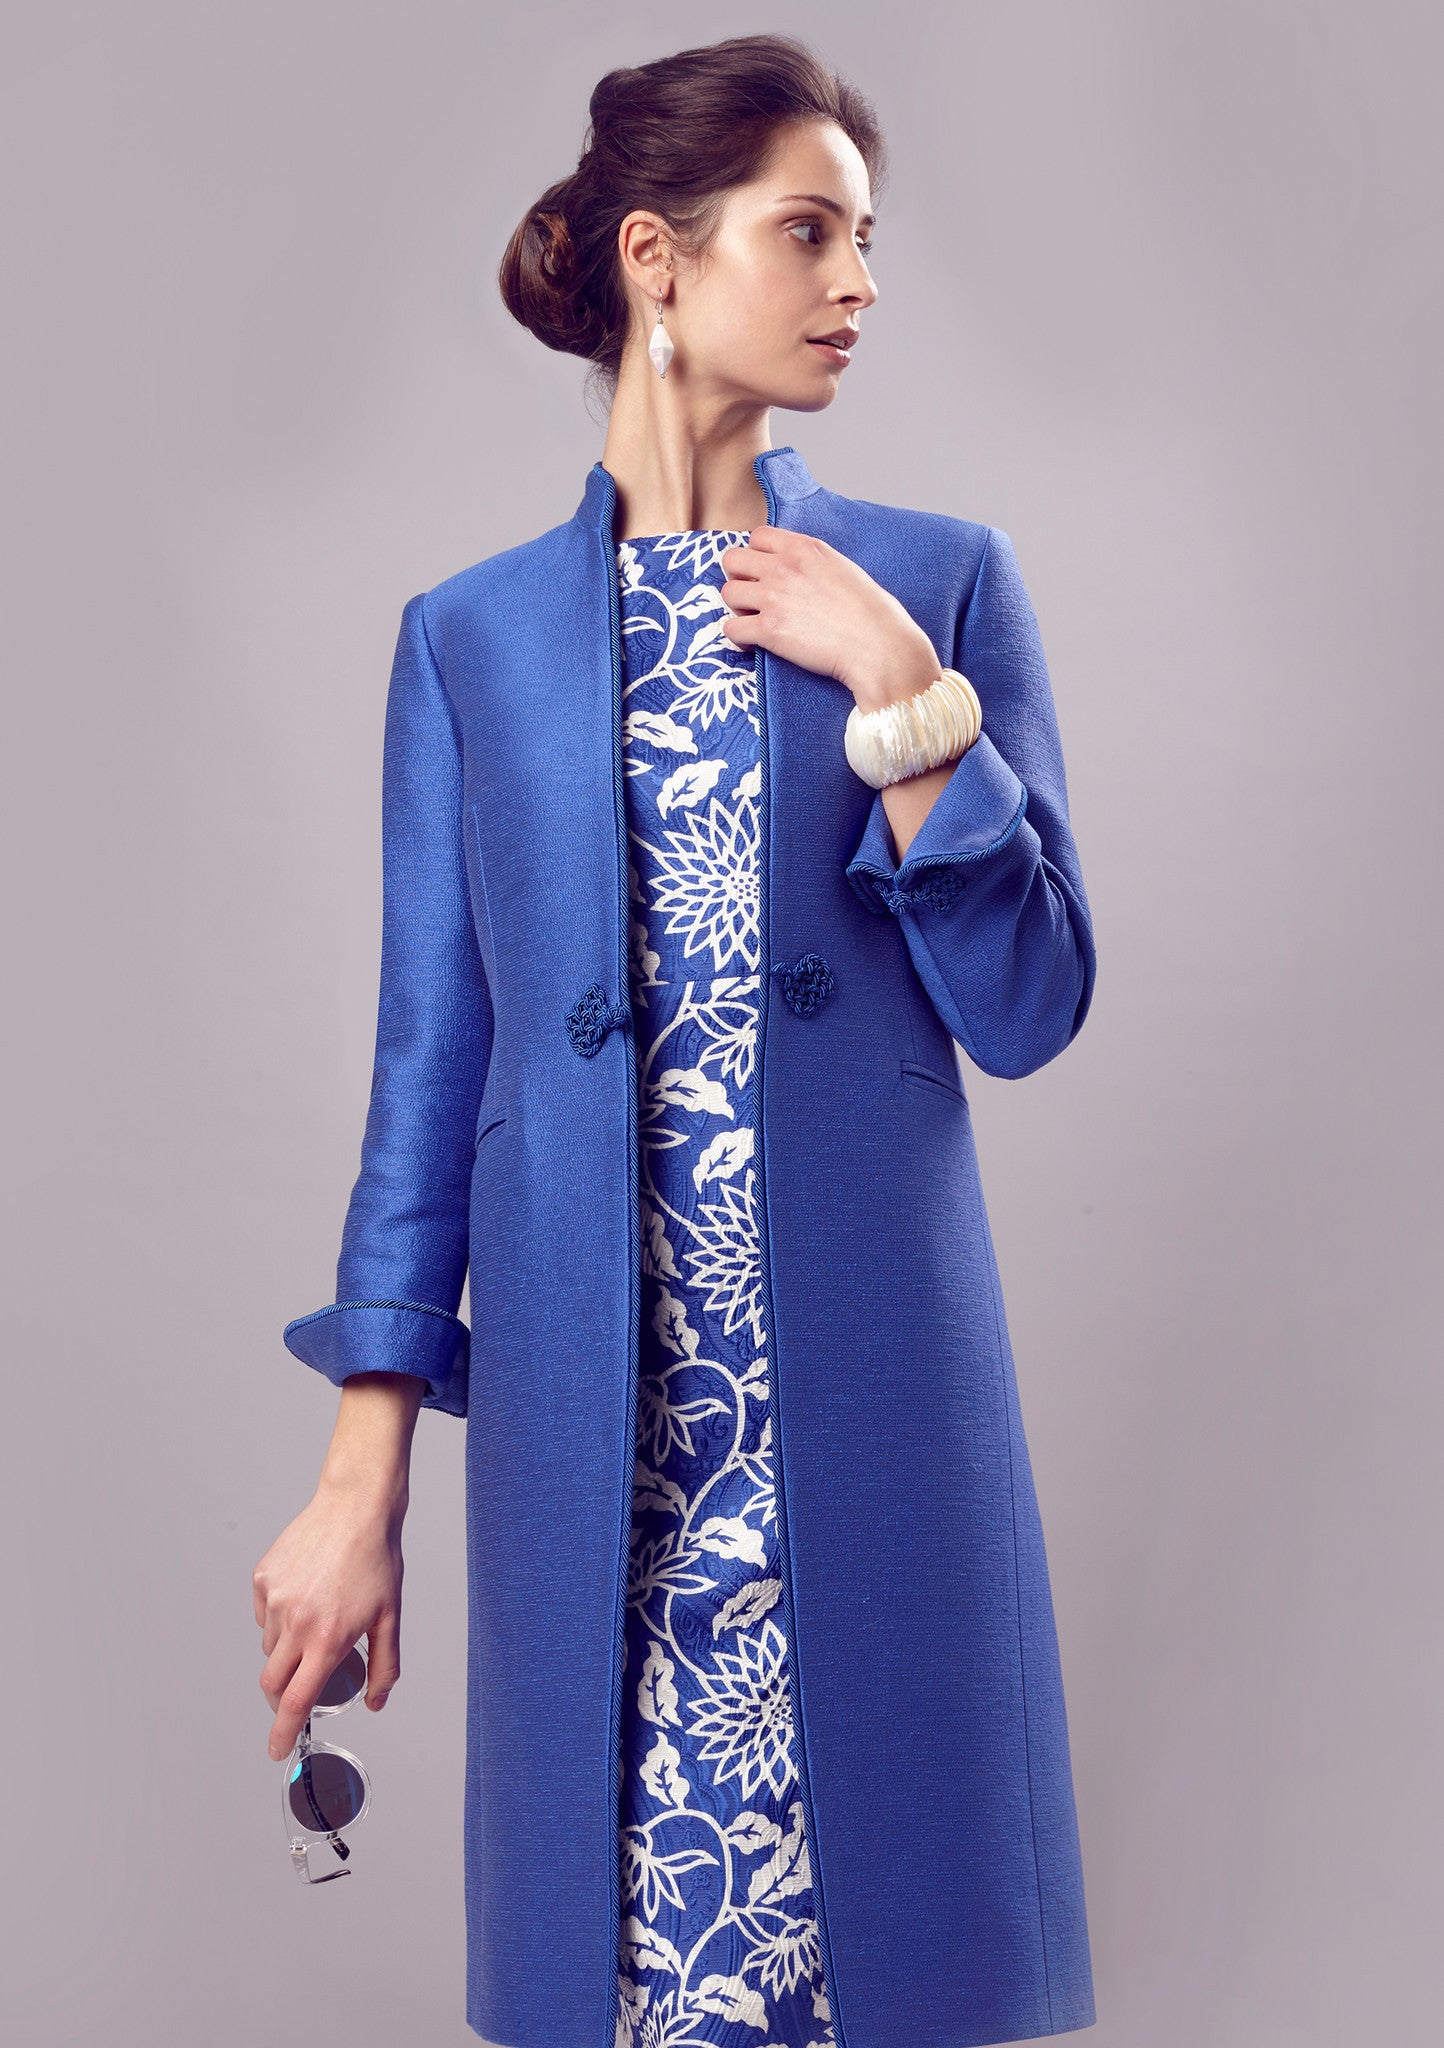 Coat - Dress-Coat In Royal Blue Silk/Cotton Summer Tweed - Vicky